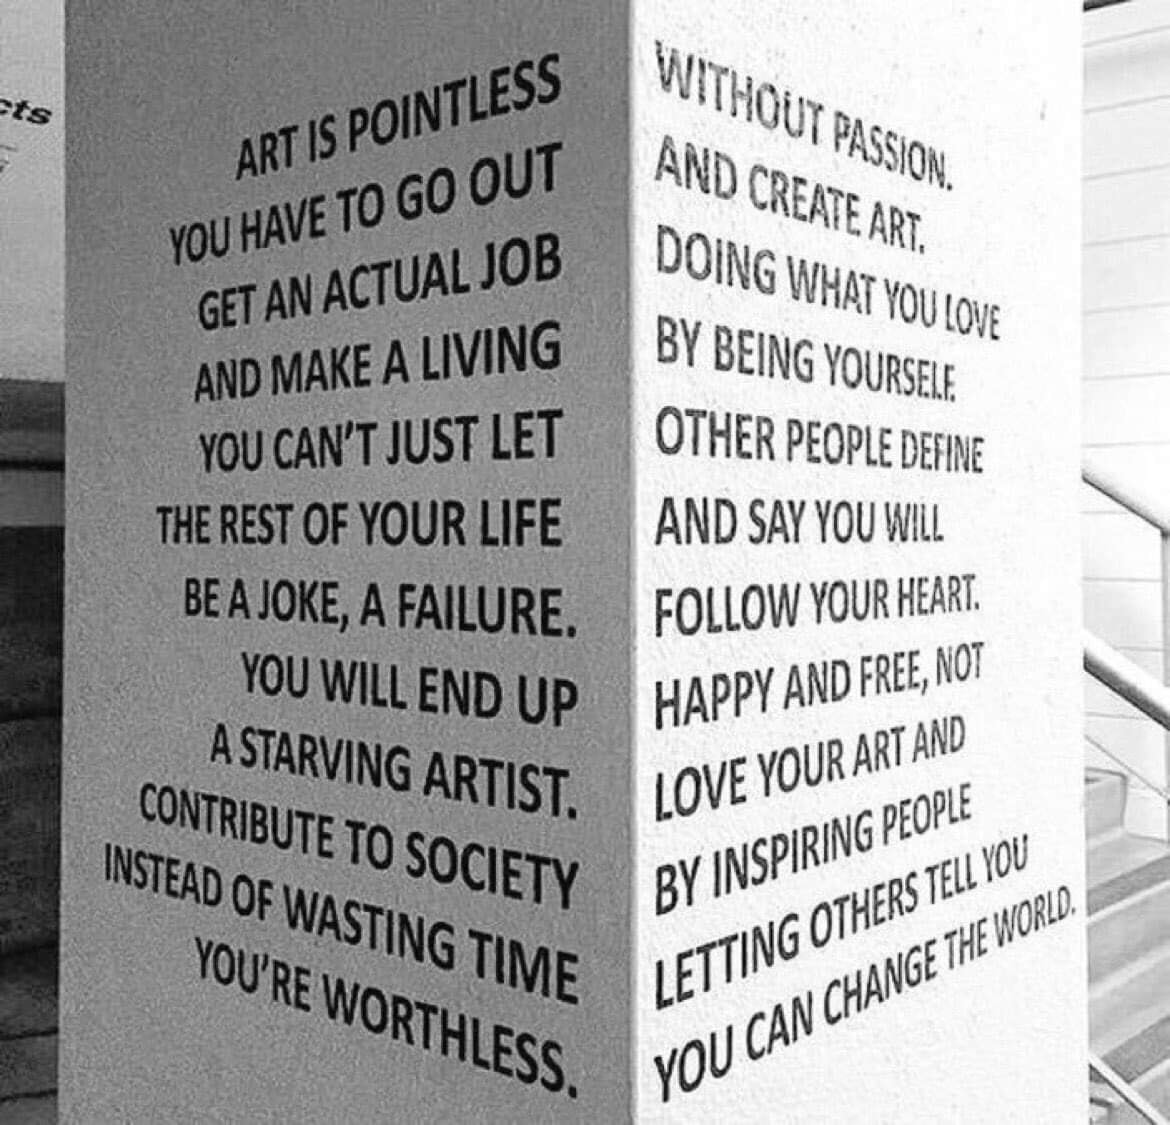 art is pointless without passion, you have to go out and create art, get an actual job doing what you love and make a living by being yourself